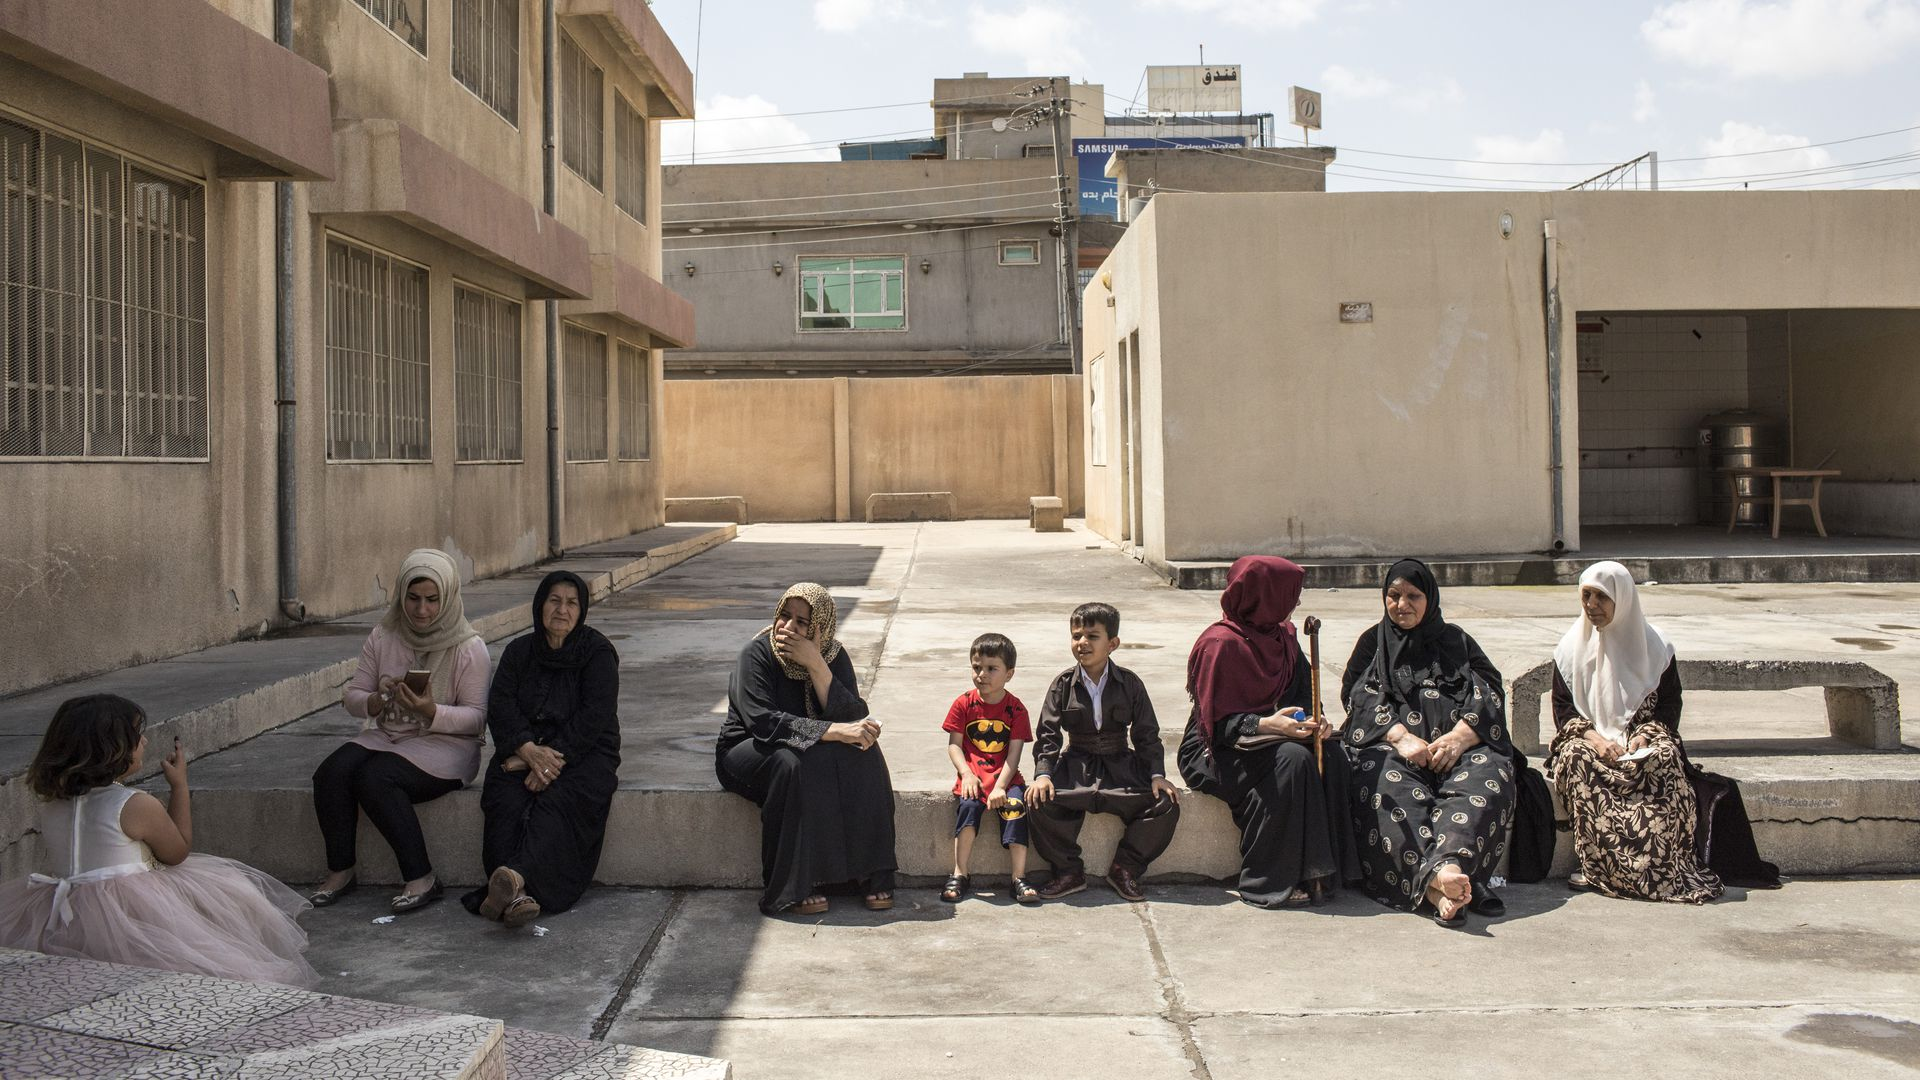 Women and children sit on a curb next to a building